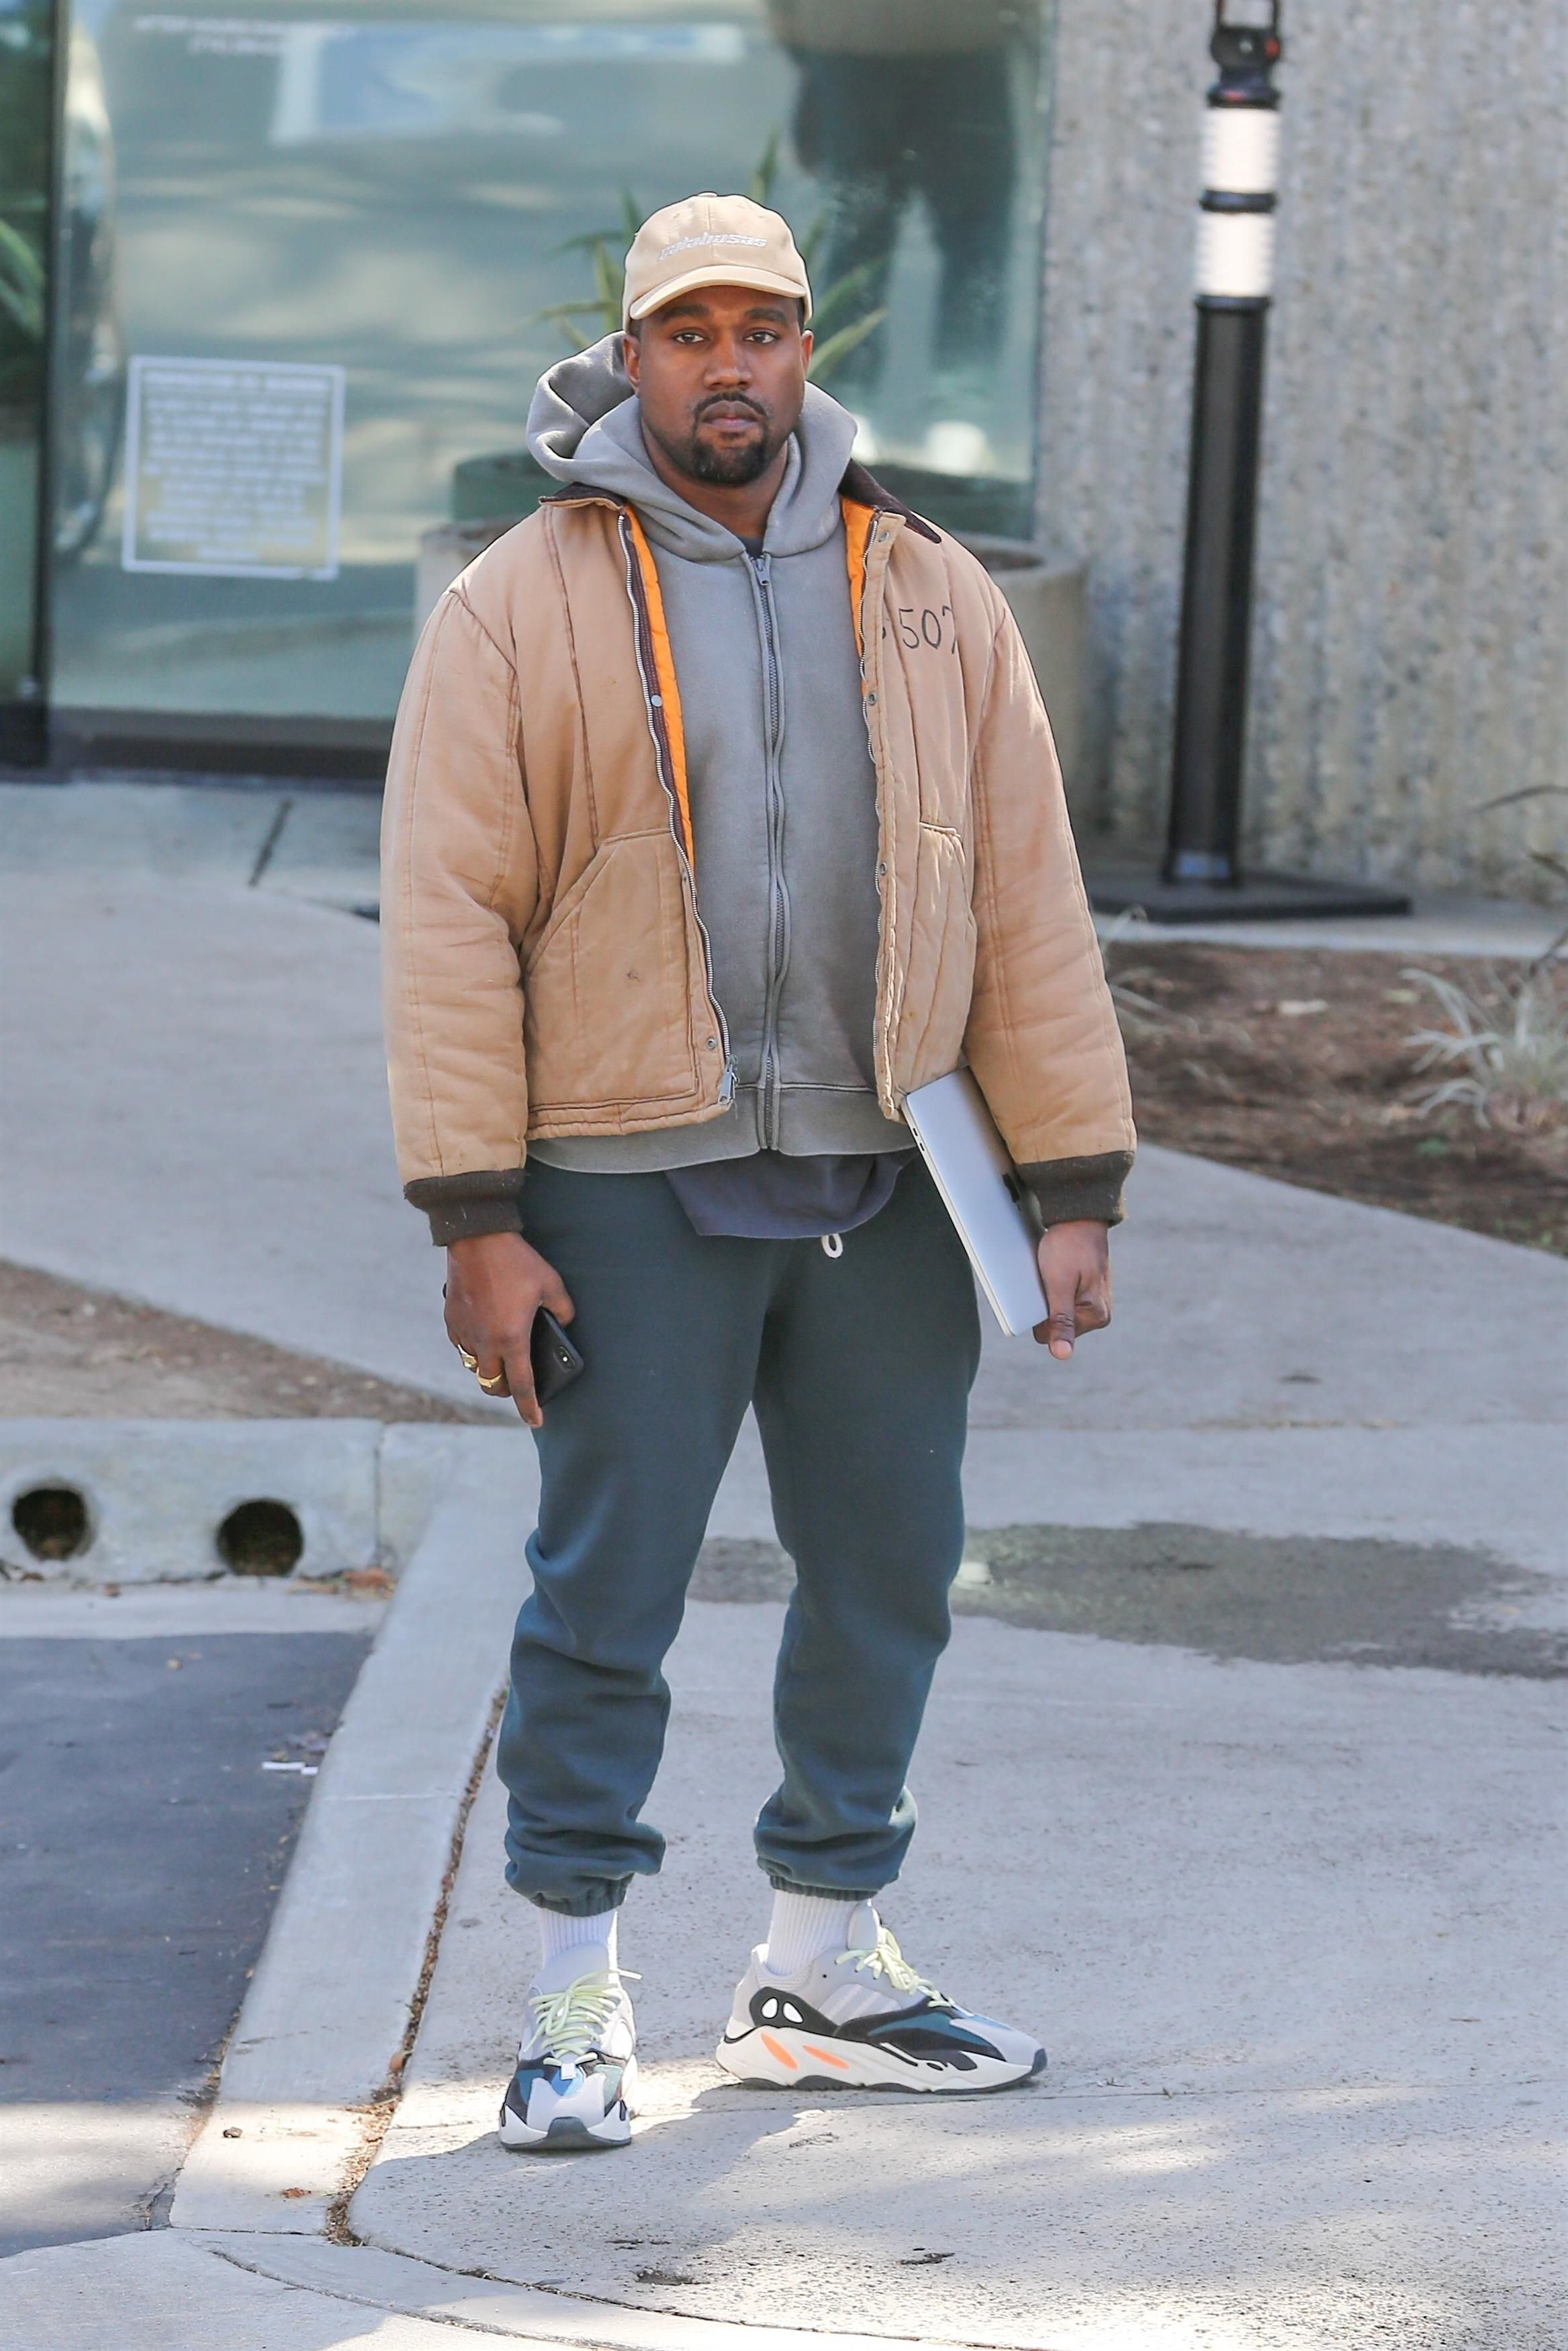 Yeezy 700 Mauve Outfit Ideas : yeezy, mauve, outfit, ideas, Parity, Yeezy, Runner, Outfit, Ideas,